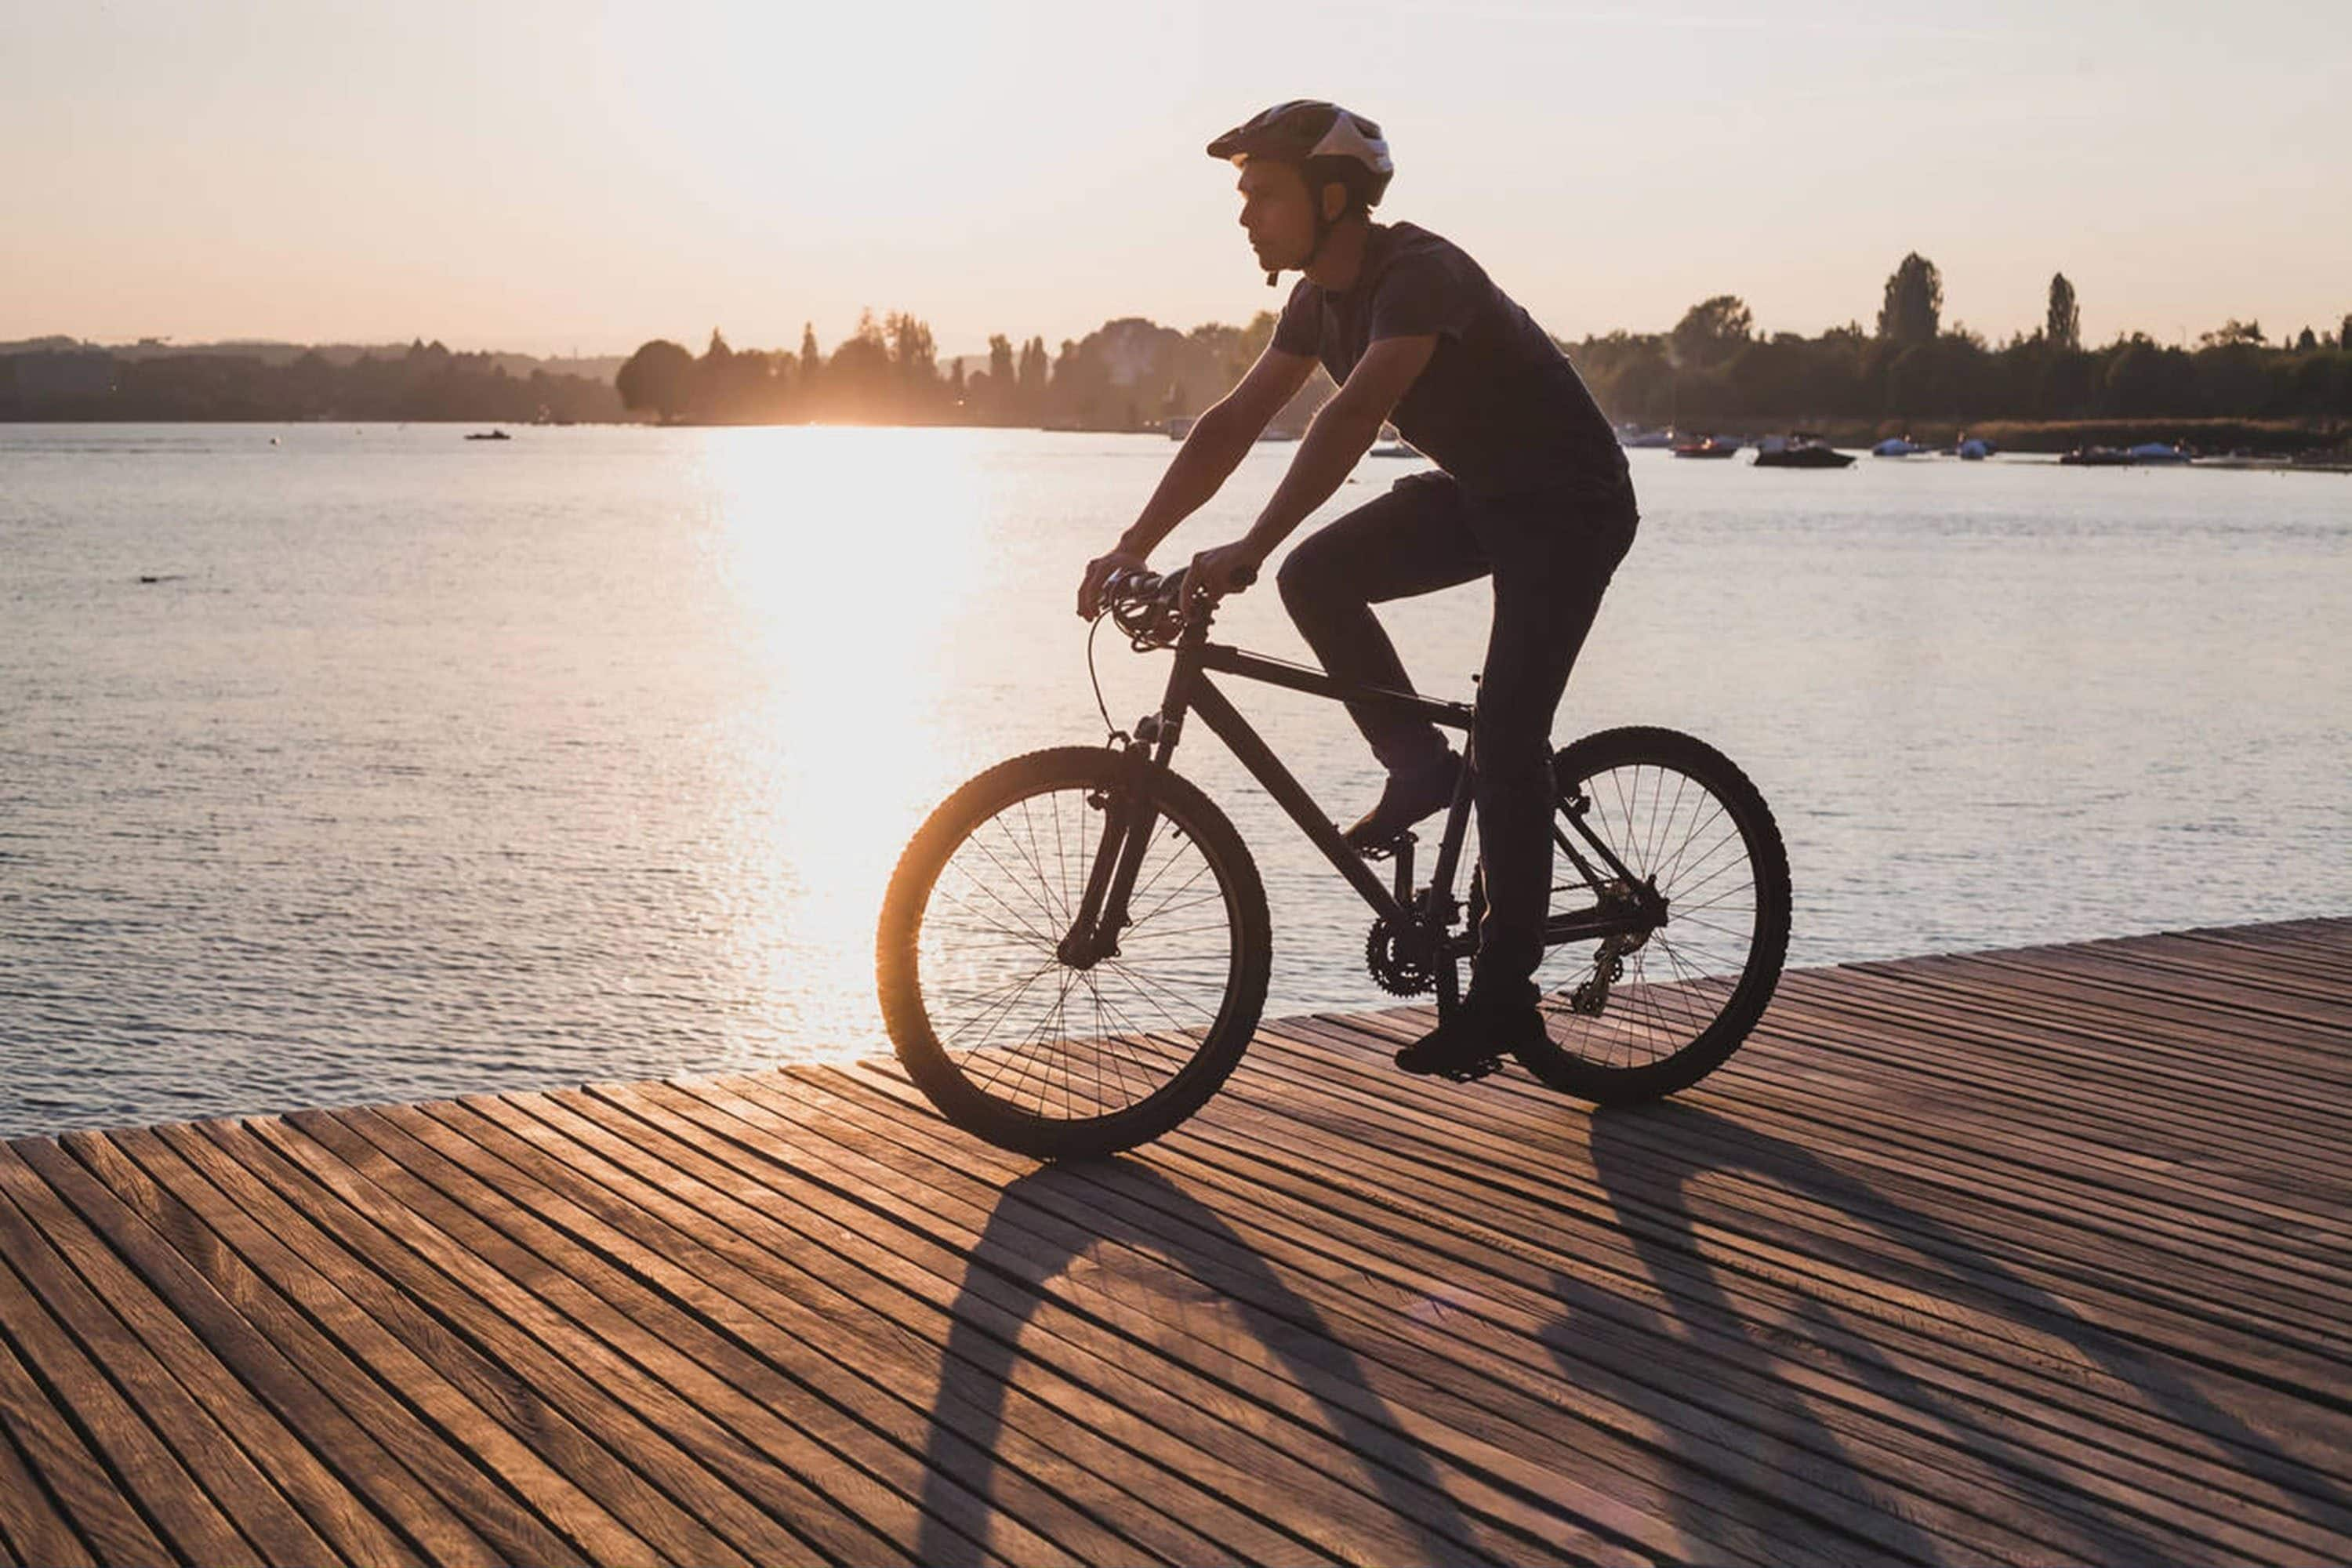 Man rides bike near a lake in the sunshine